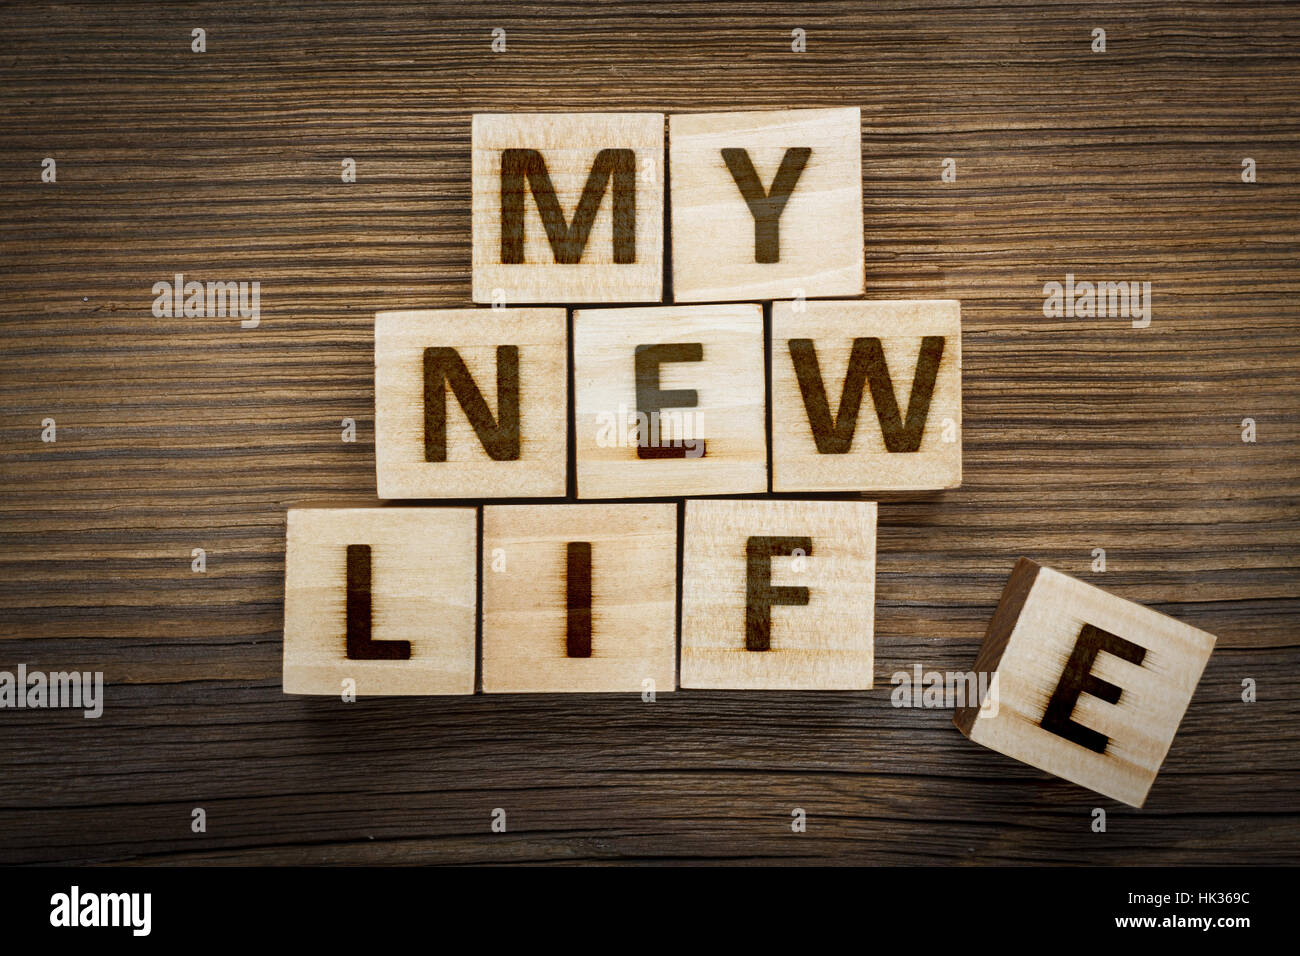 'My New Life' inscription on made from wooden blocks - Stock Image